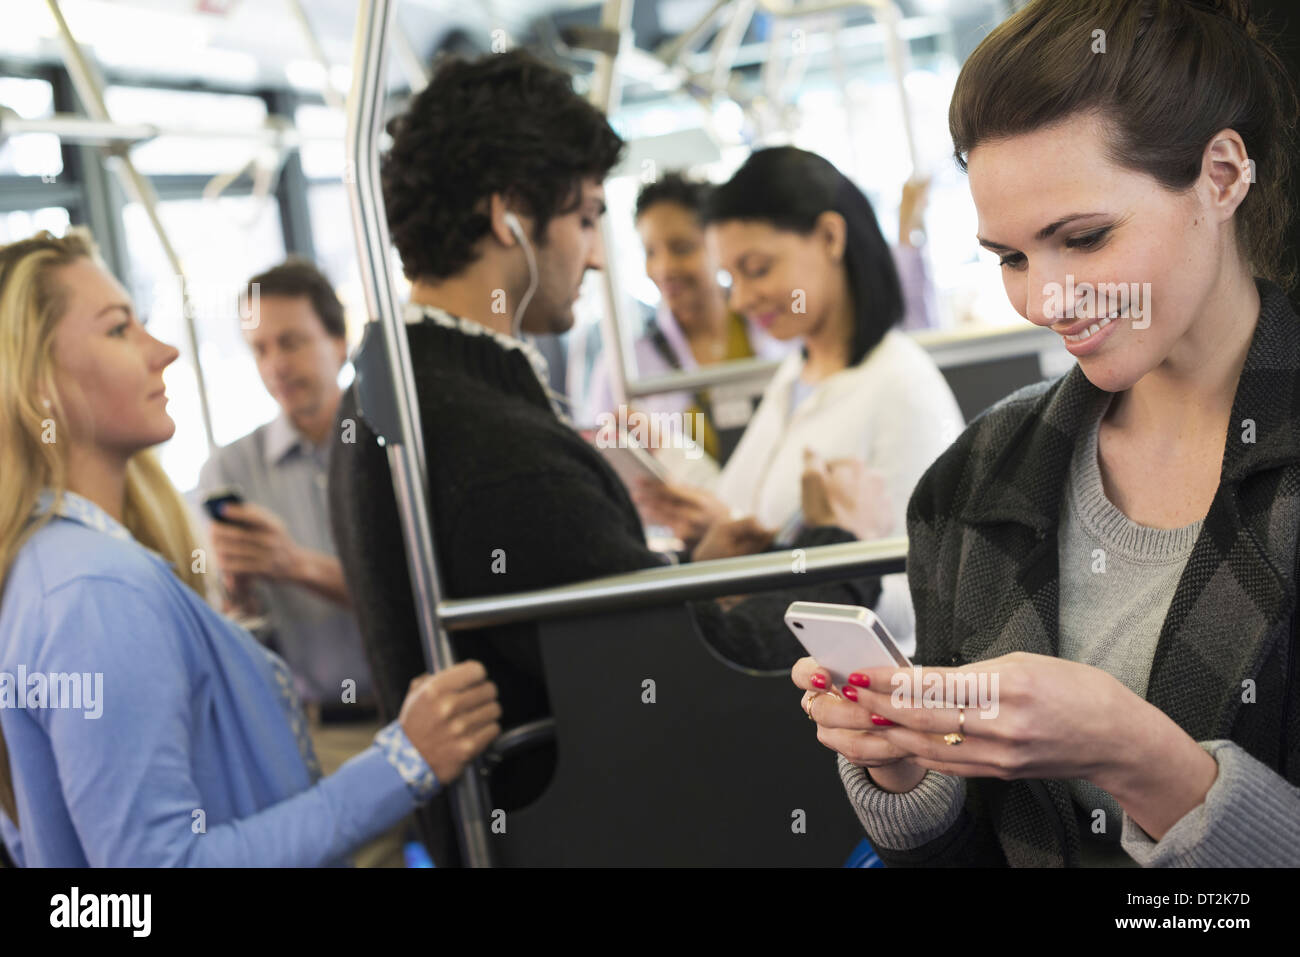 People men and women on a city bus - Stock Image